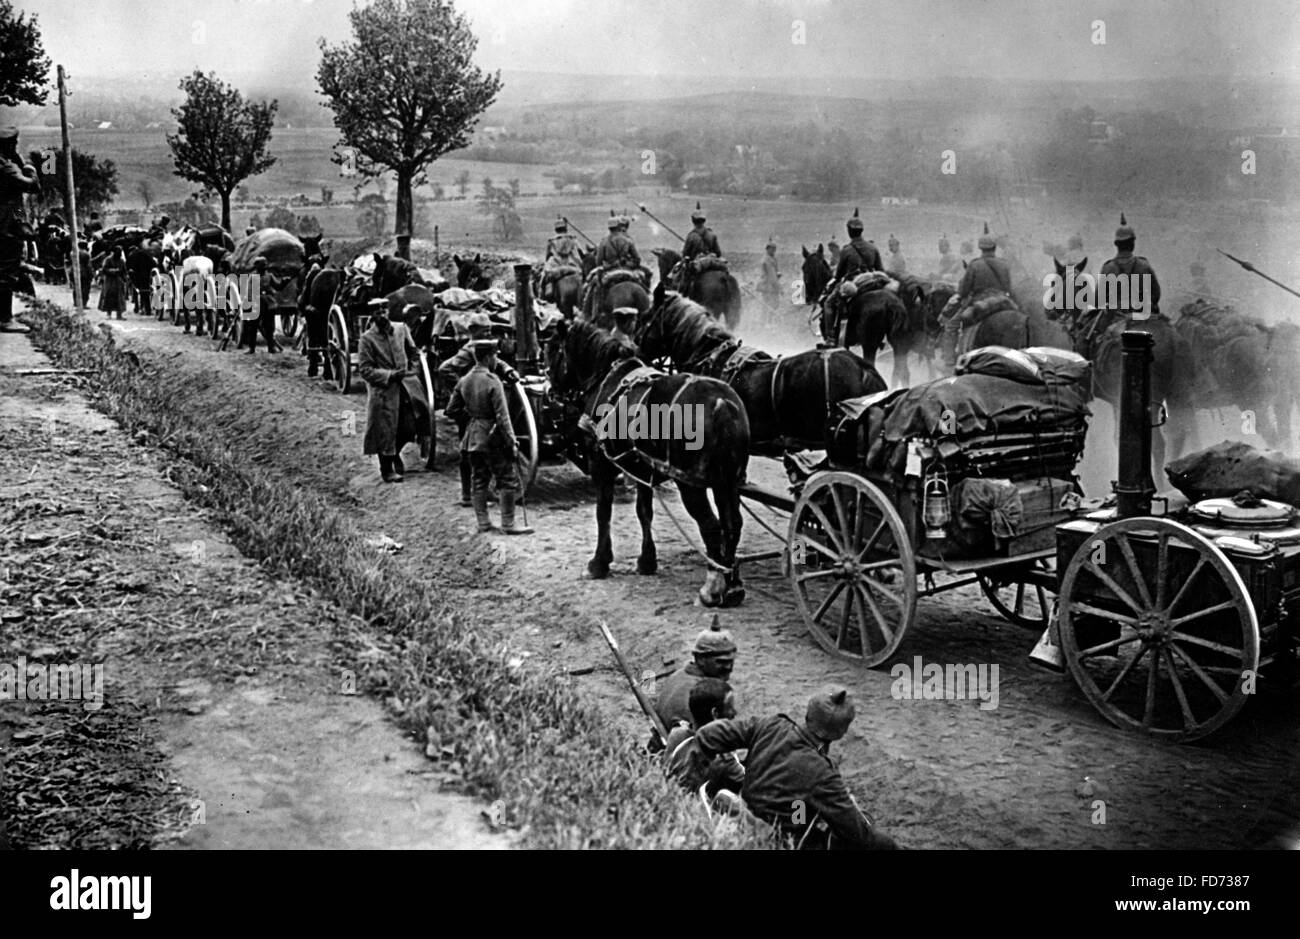 Cavalry and German stage for the Battle of the Marne, 1914 - Stock Image